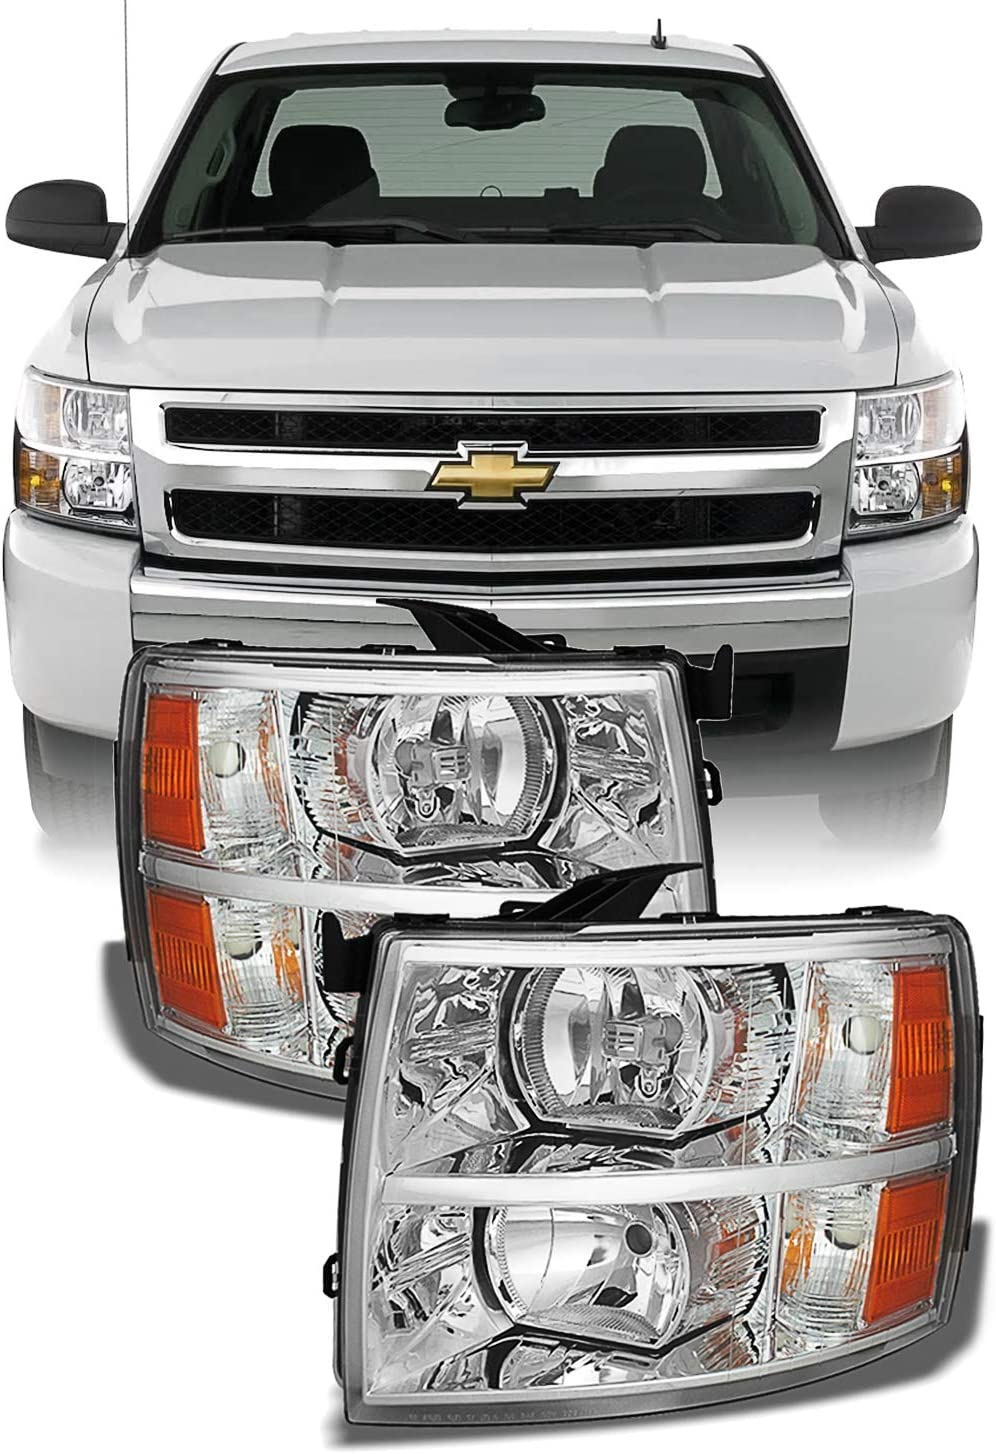 Headlight Assembly for 2007 2008 2009 2010 2011 2012 2013 2014 Chevy Silverado Replacement Headlamp Driving Light Chromed Housing Amber Reflector Clear Lens,2 Year Warranty Pair AUTOSAVER88 Chevy Silverado 2007-2014